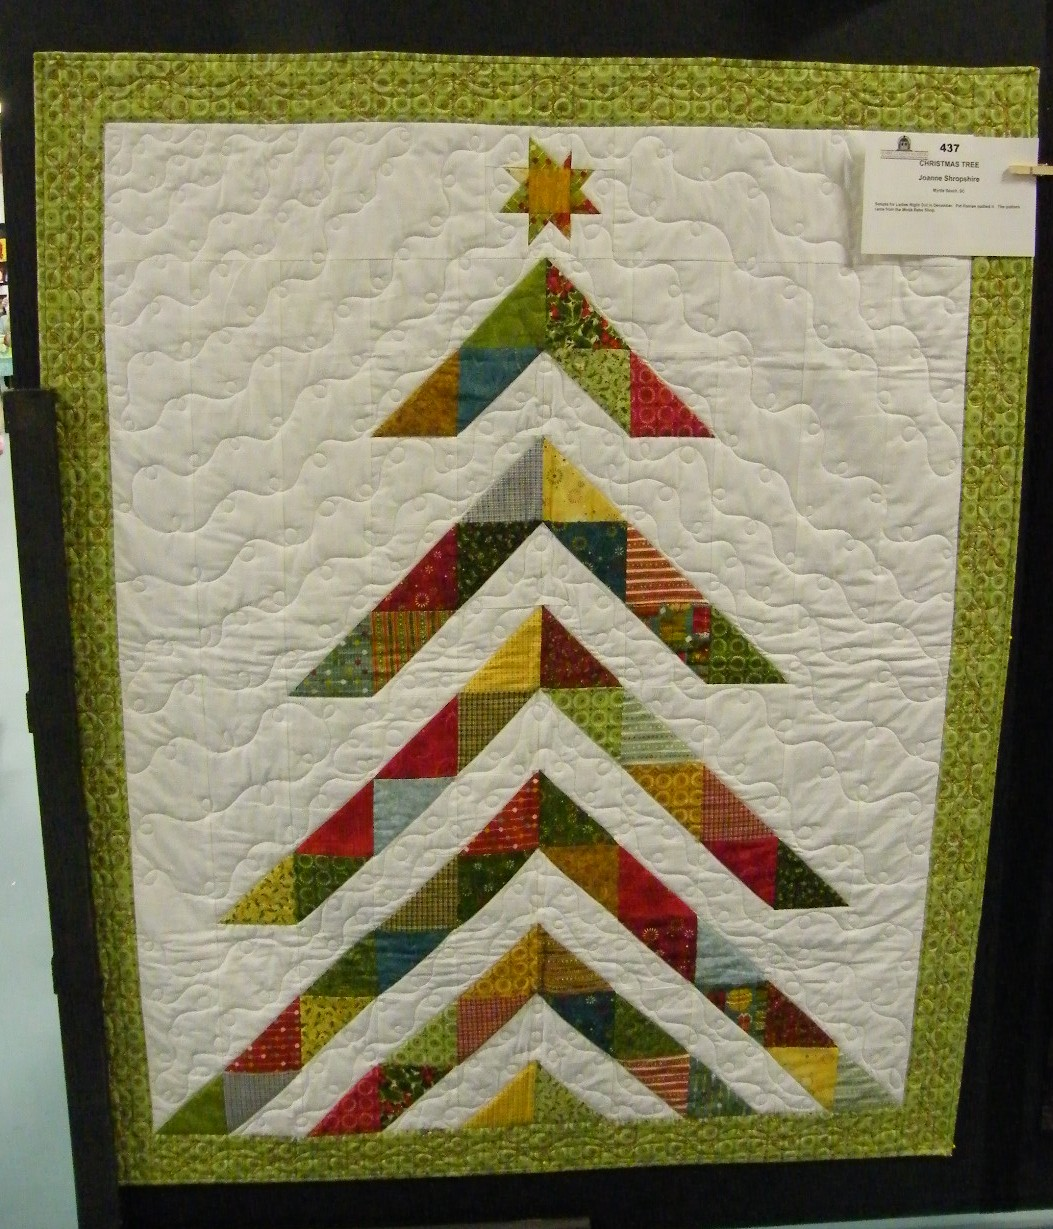 Quilt Patterns To Knit : Quilt, Knit, Run, Sew: Myrtle Beach Quilt Show 2012 - More Fabulous Quilts